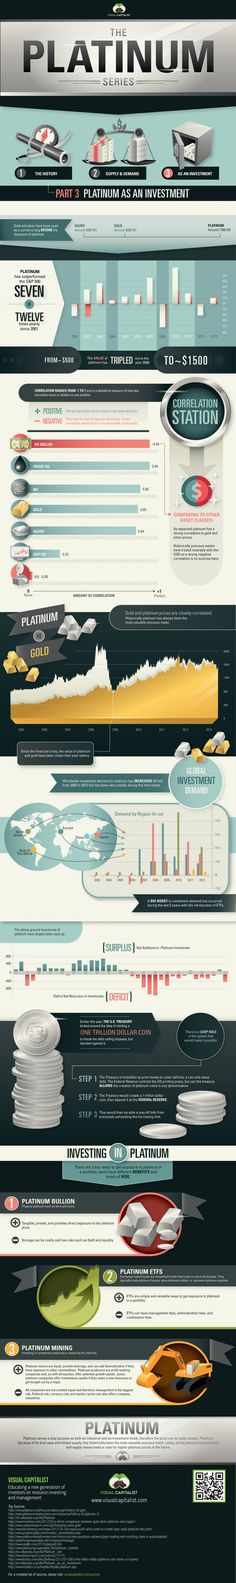 The #Platinum Series: Platinum as an Investment #Infographic